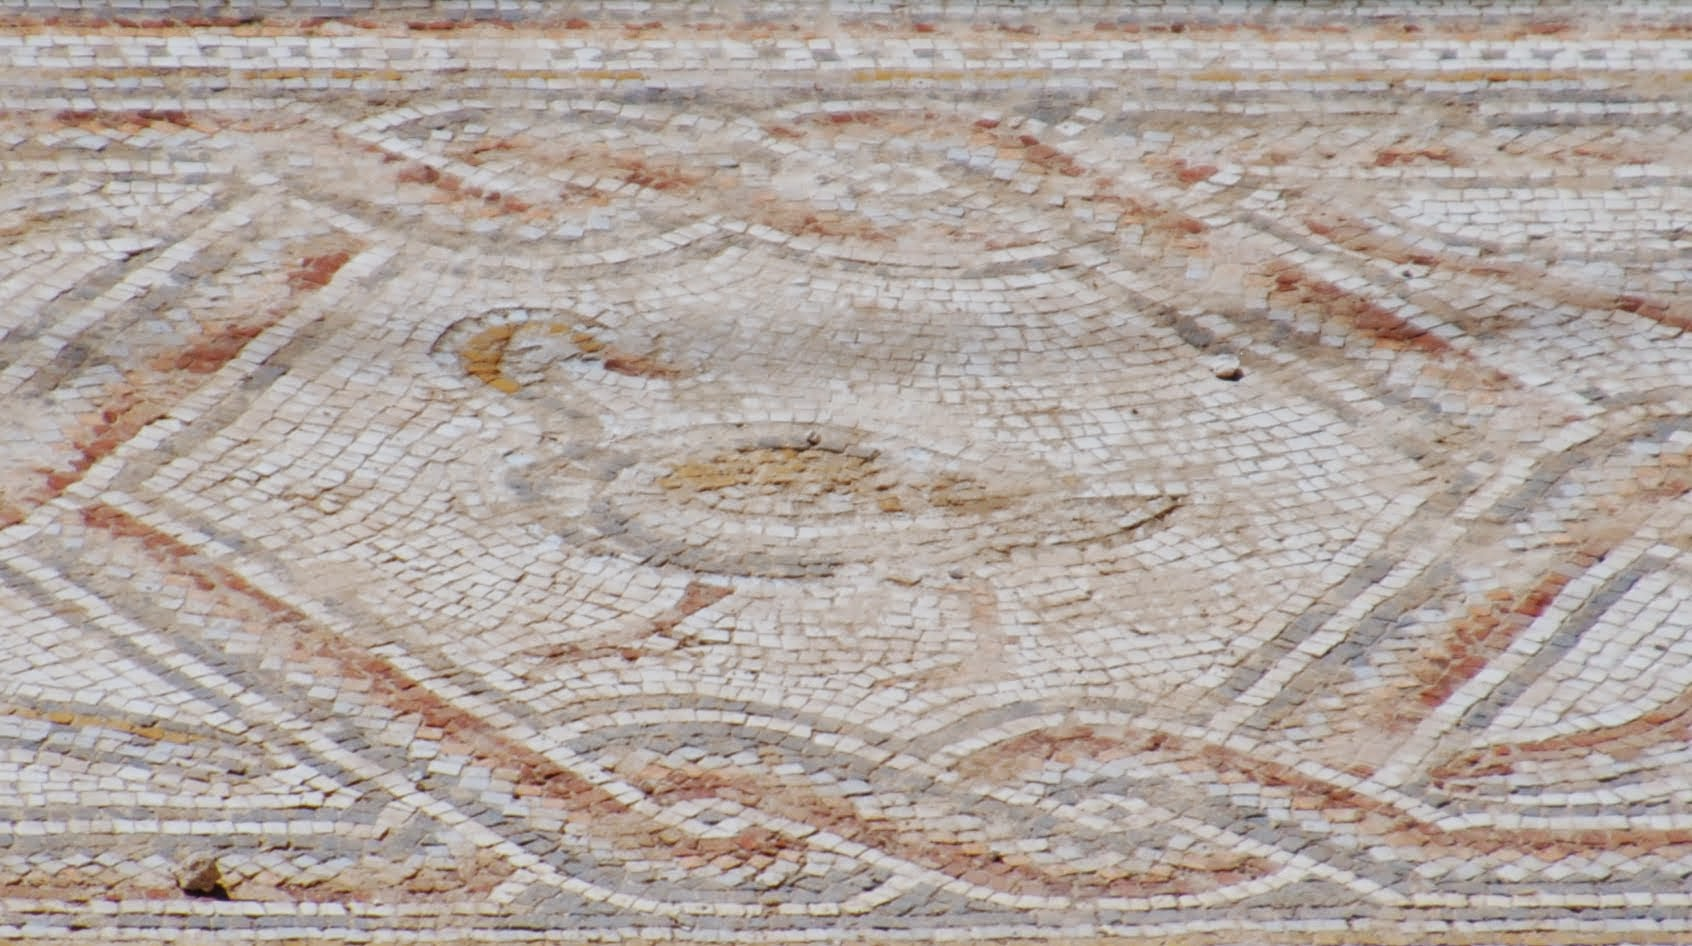 My Photos: Jordan -- Mosaics -- Jerash